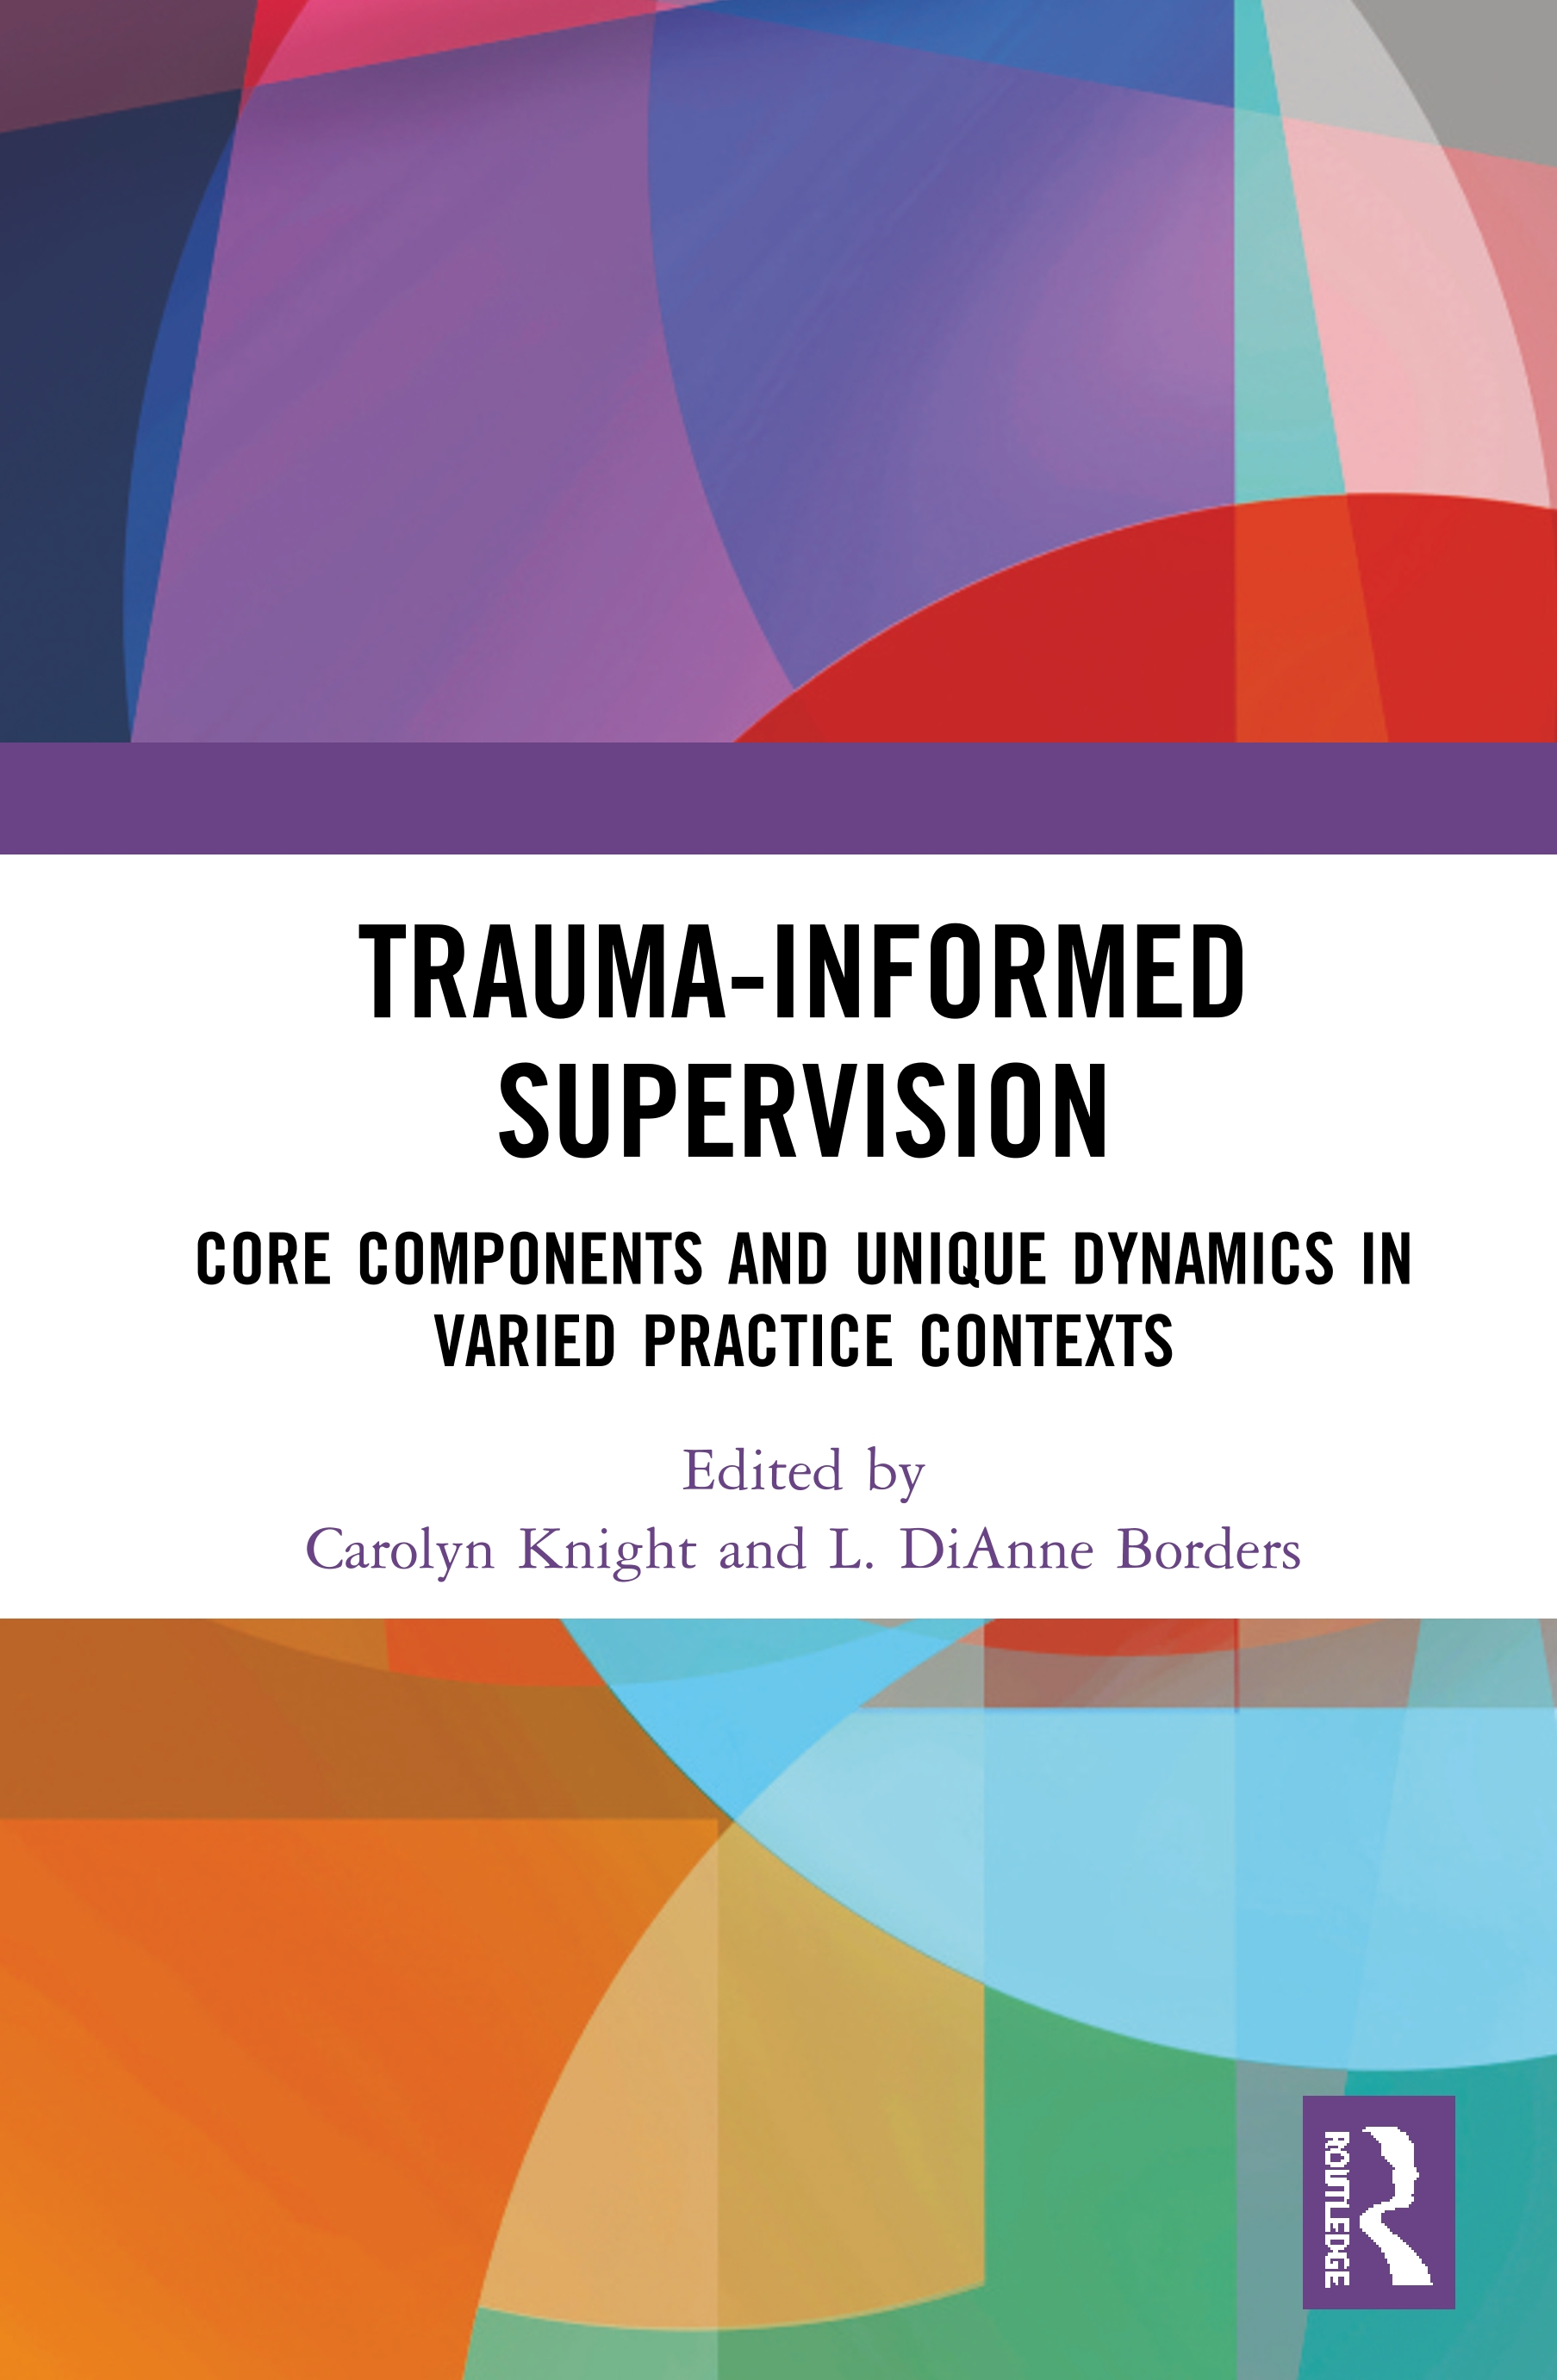 Trauma-Informed Supervision: Core Components and Unique Dynamics in Varied Practice Contexts book cover